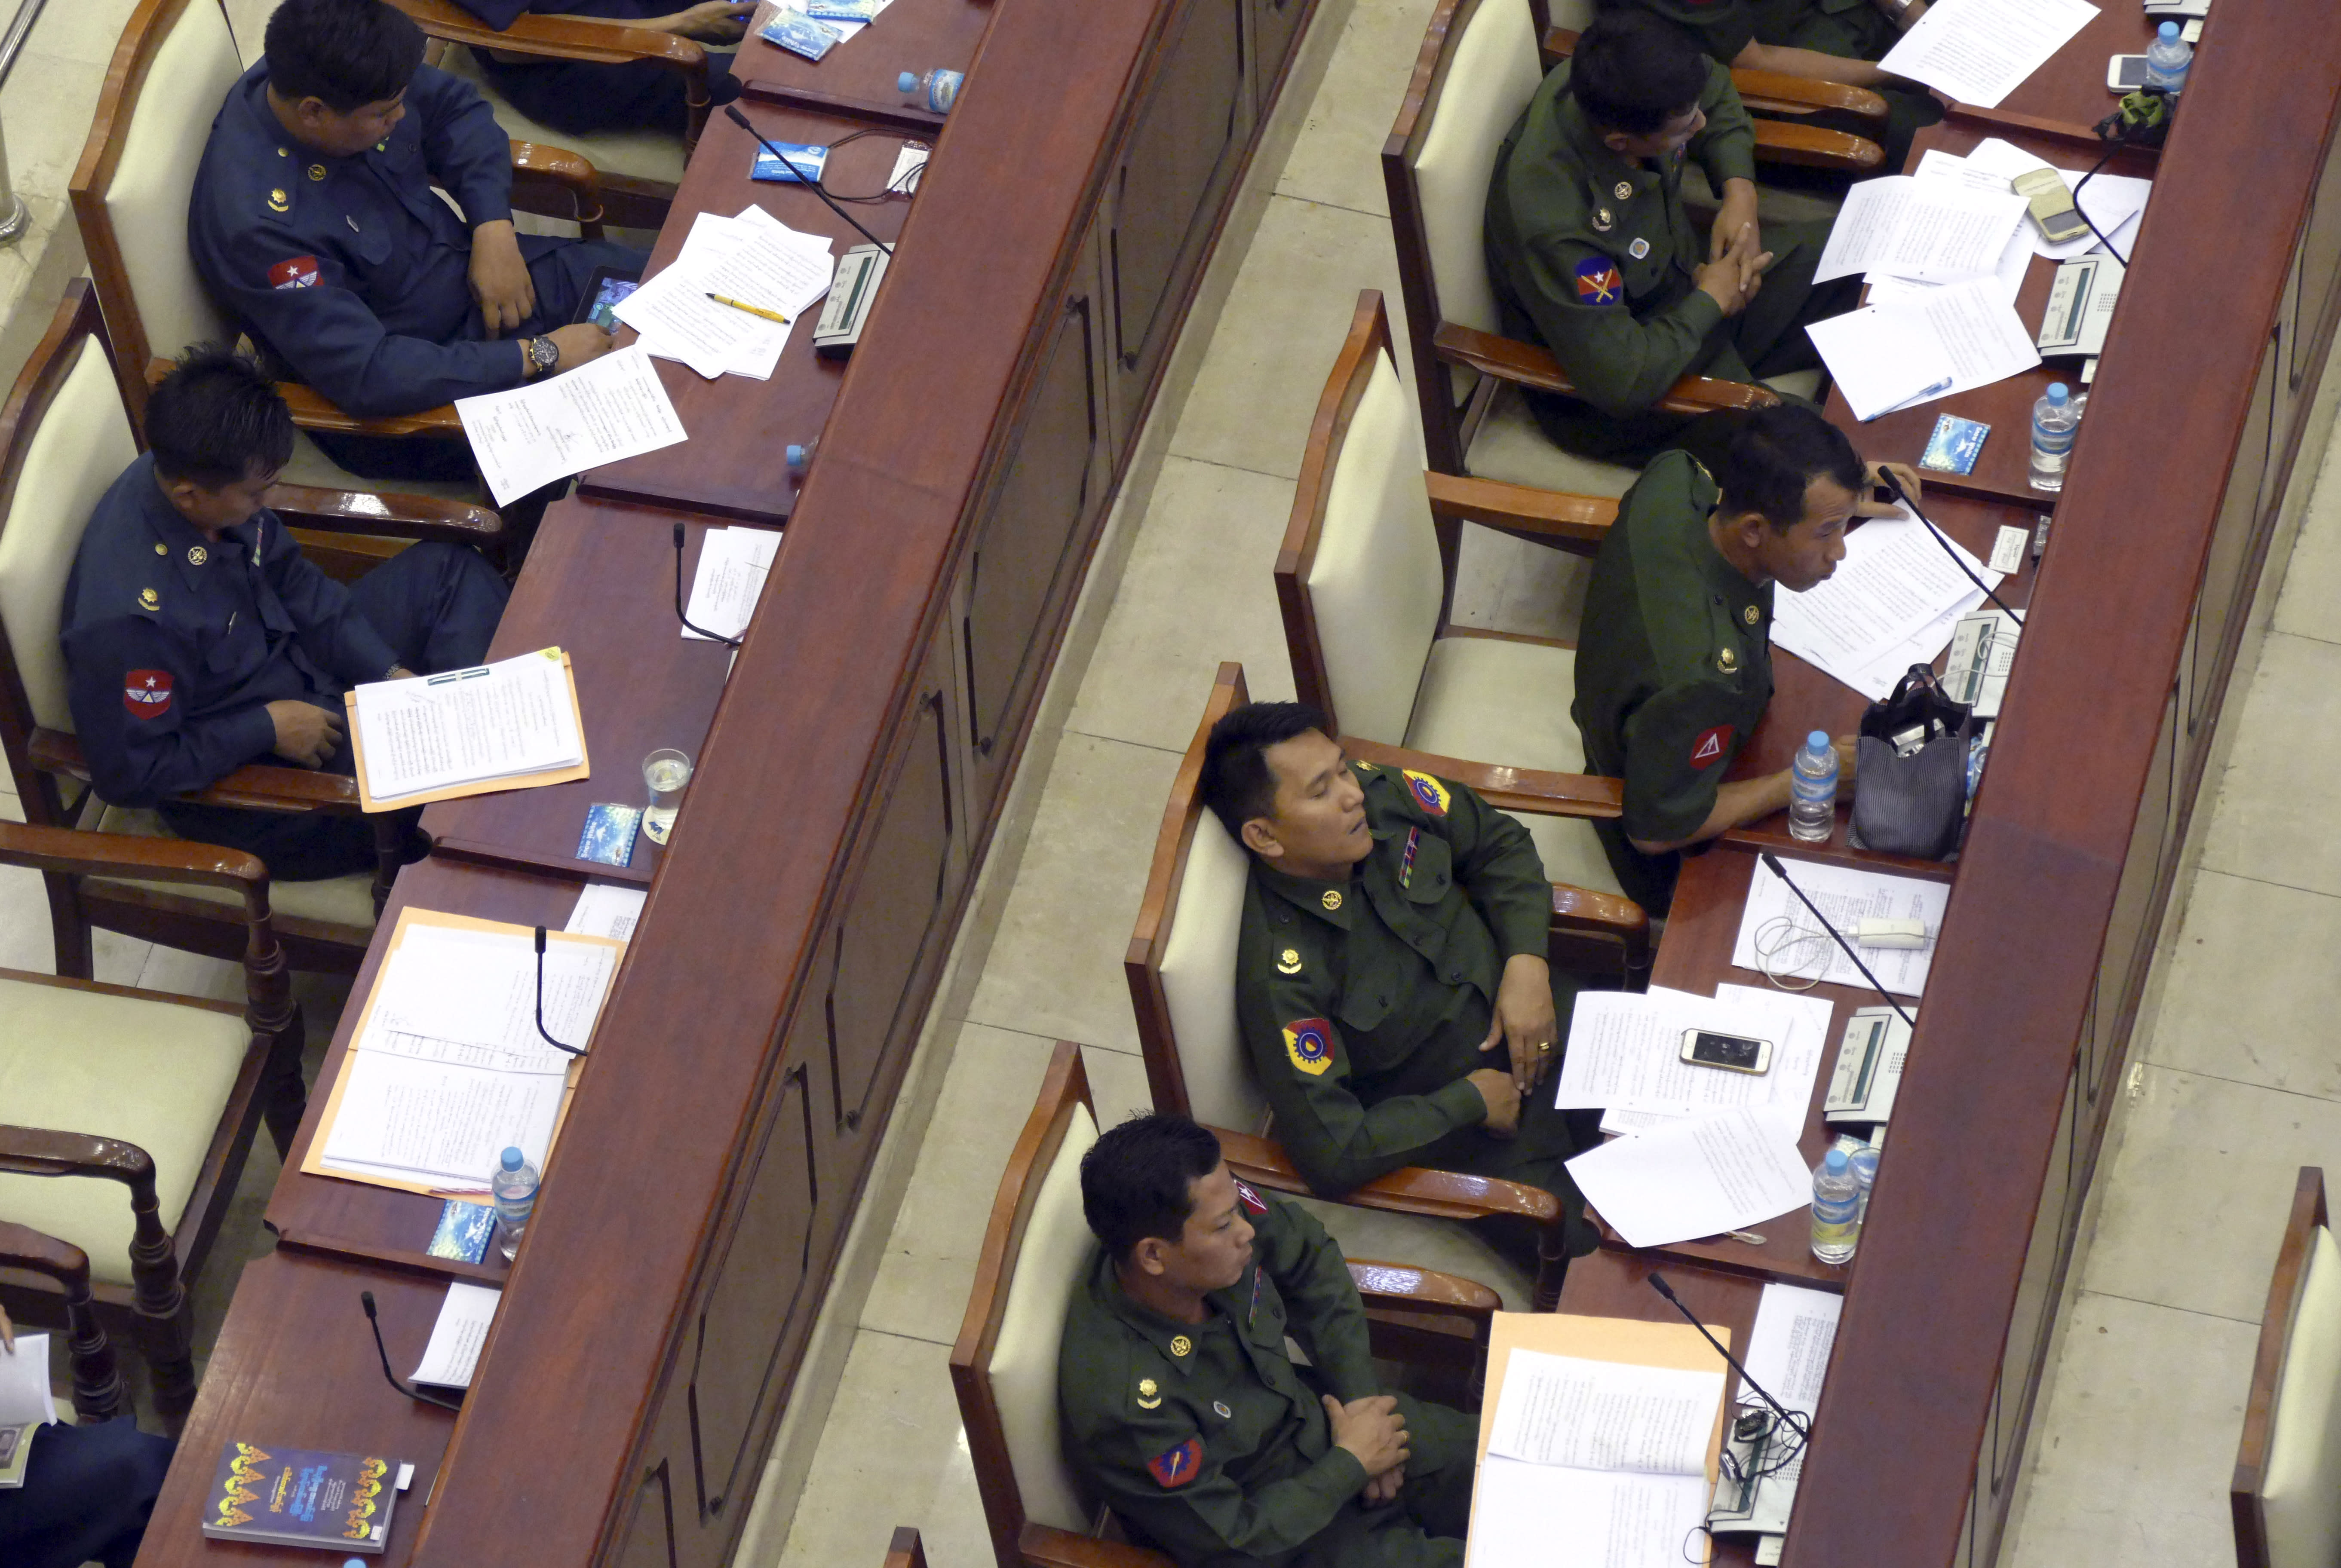 Myanmar restricts journalists after photos show sleeping MPs